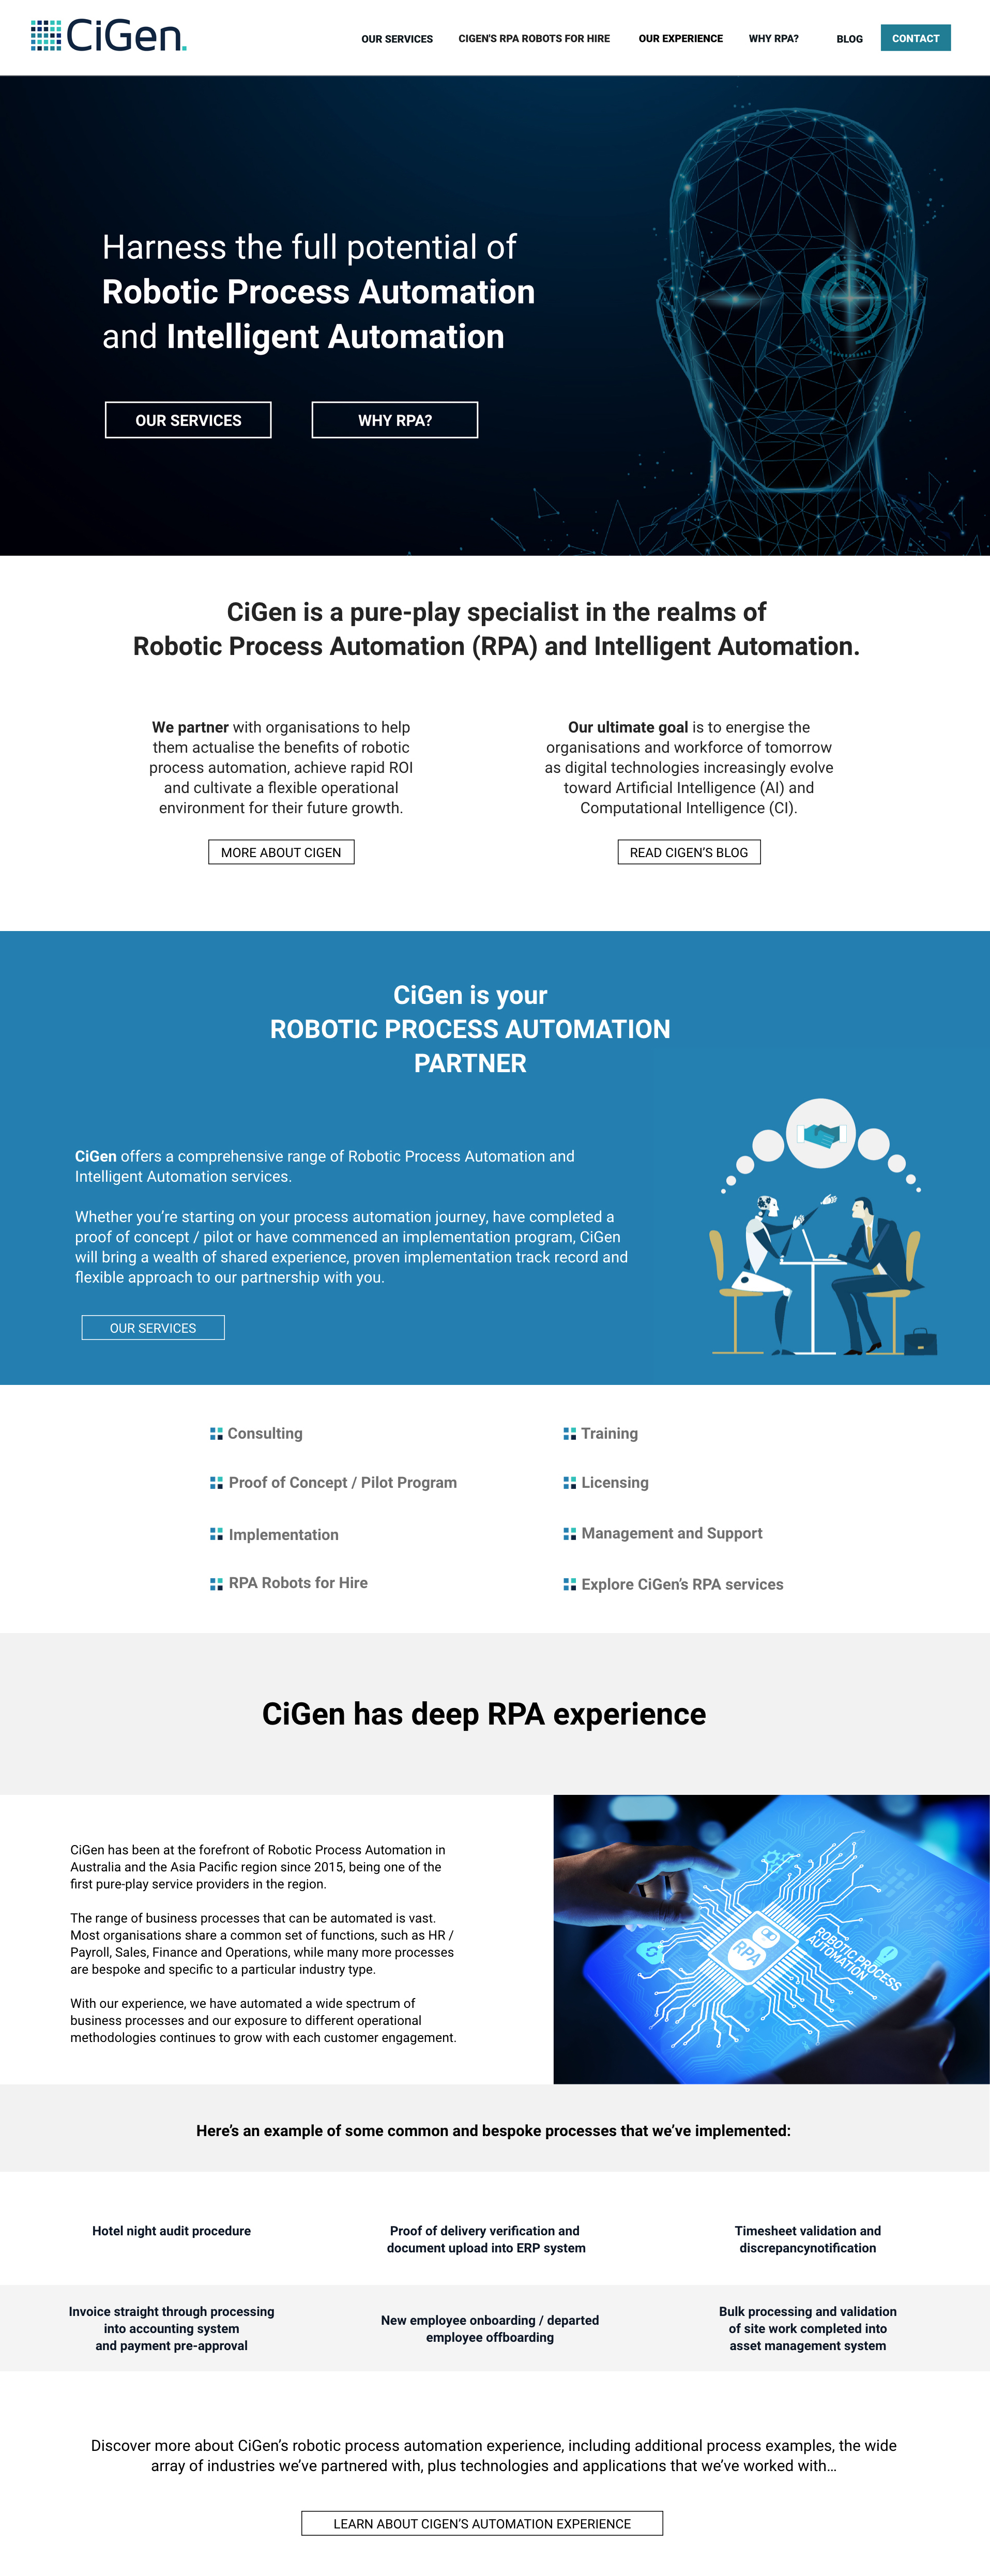 CiGen-Website-Redesign-The-New-Face-of-Australian-robotic-process-automation-RPA-Intelligent-Automation-Services-2.jpg